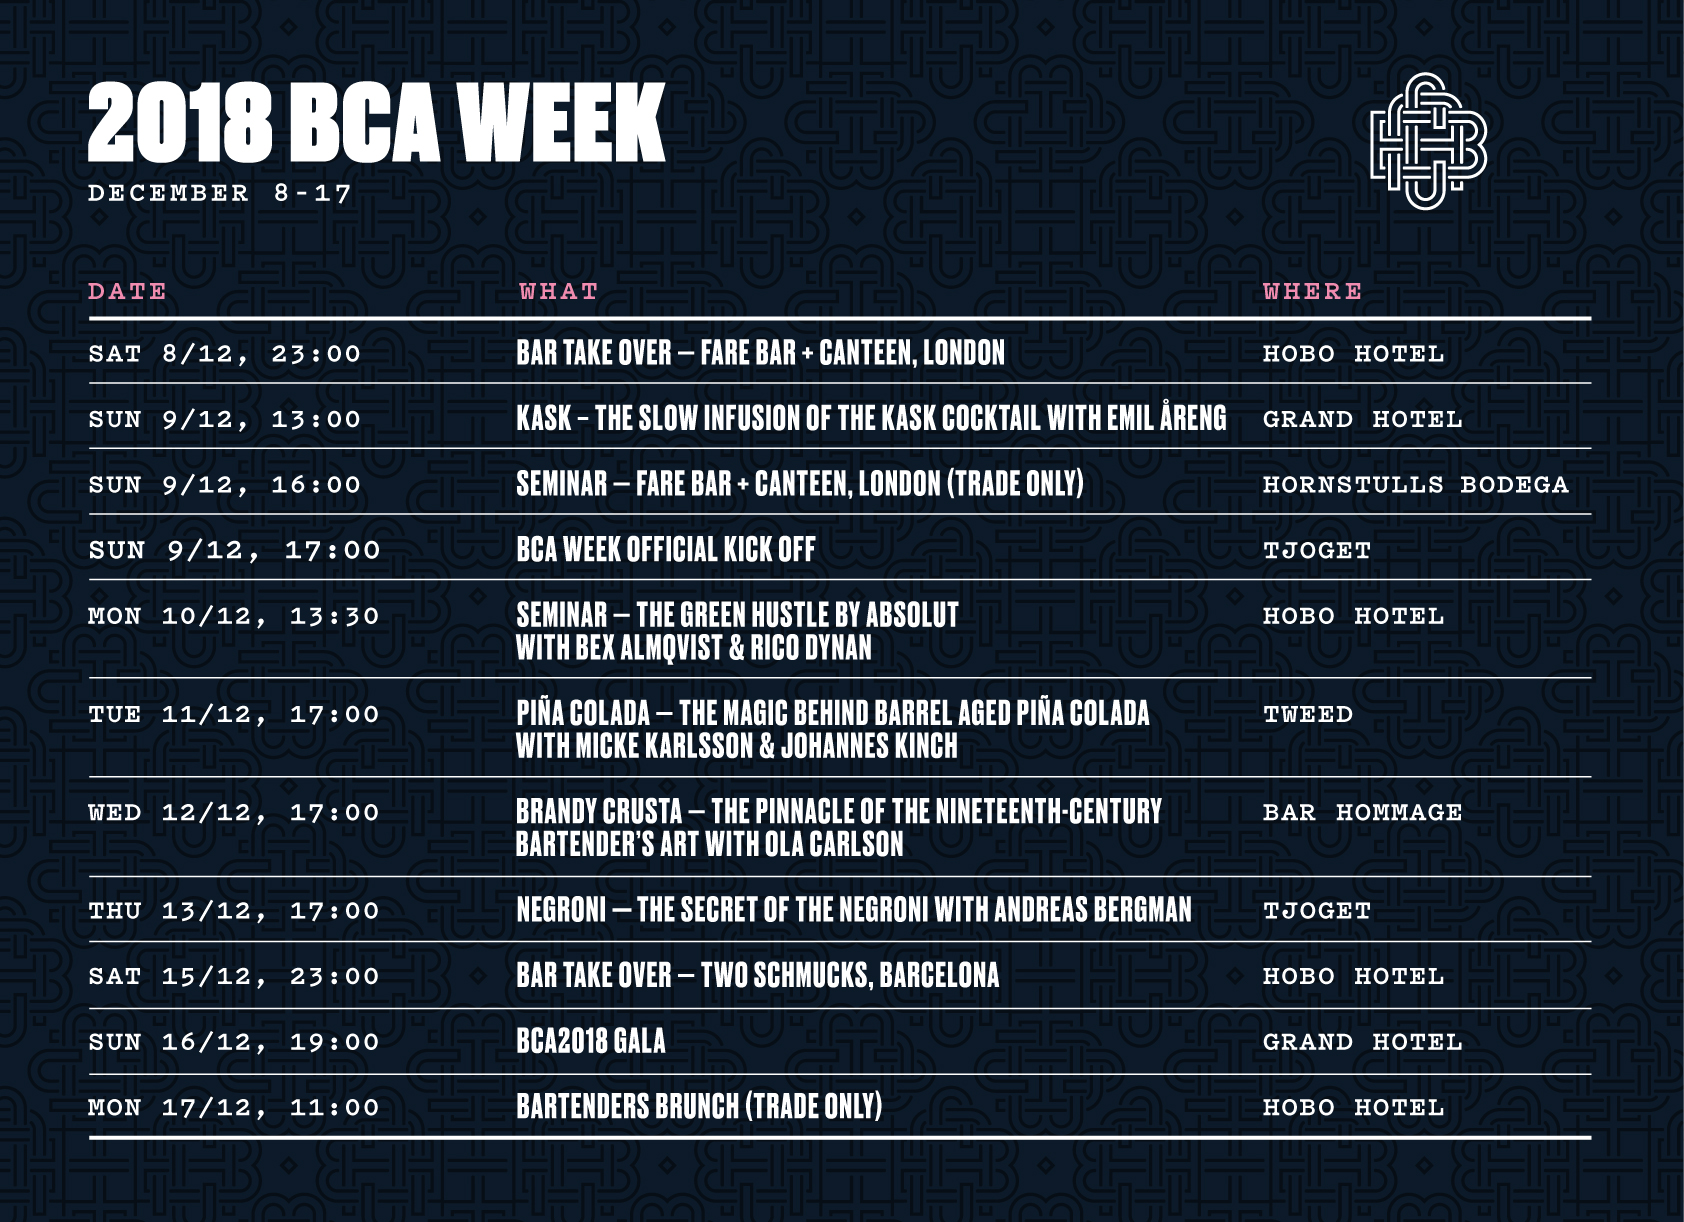 bca_week_poster_dates_3.jpg